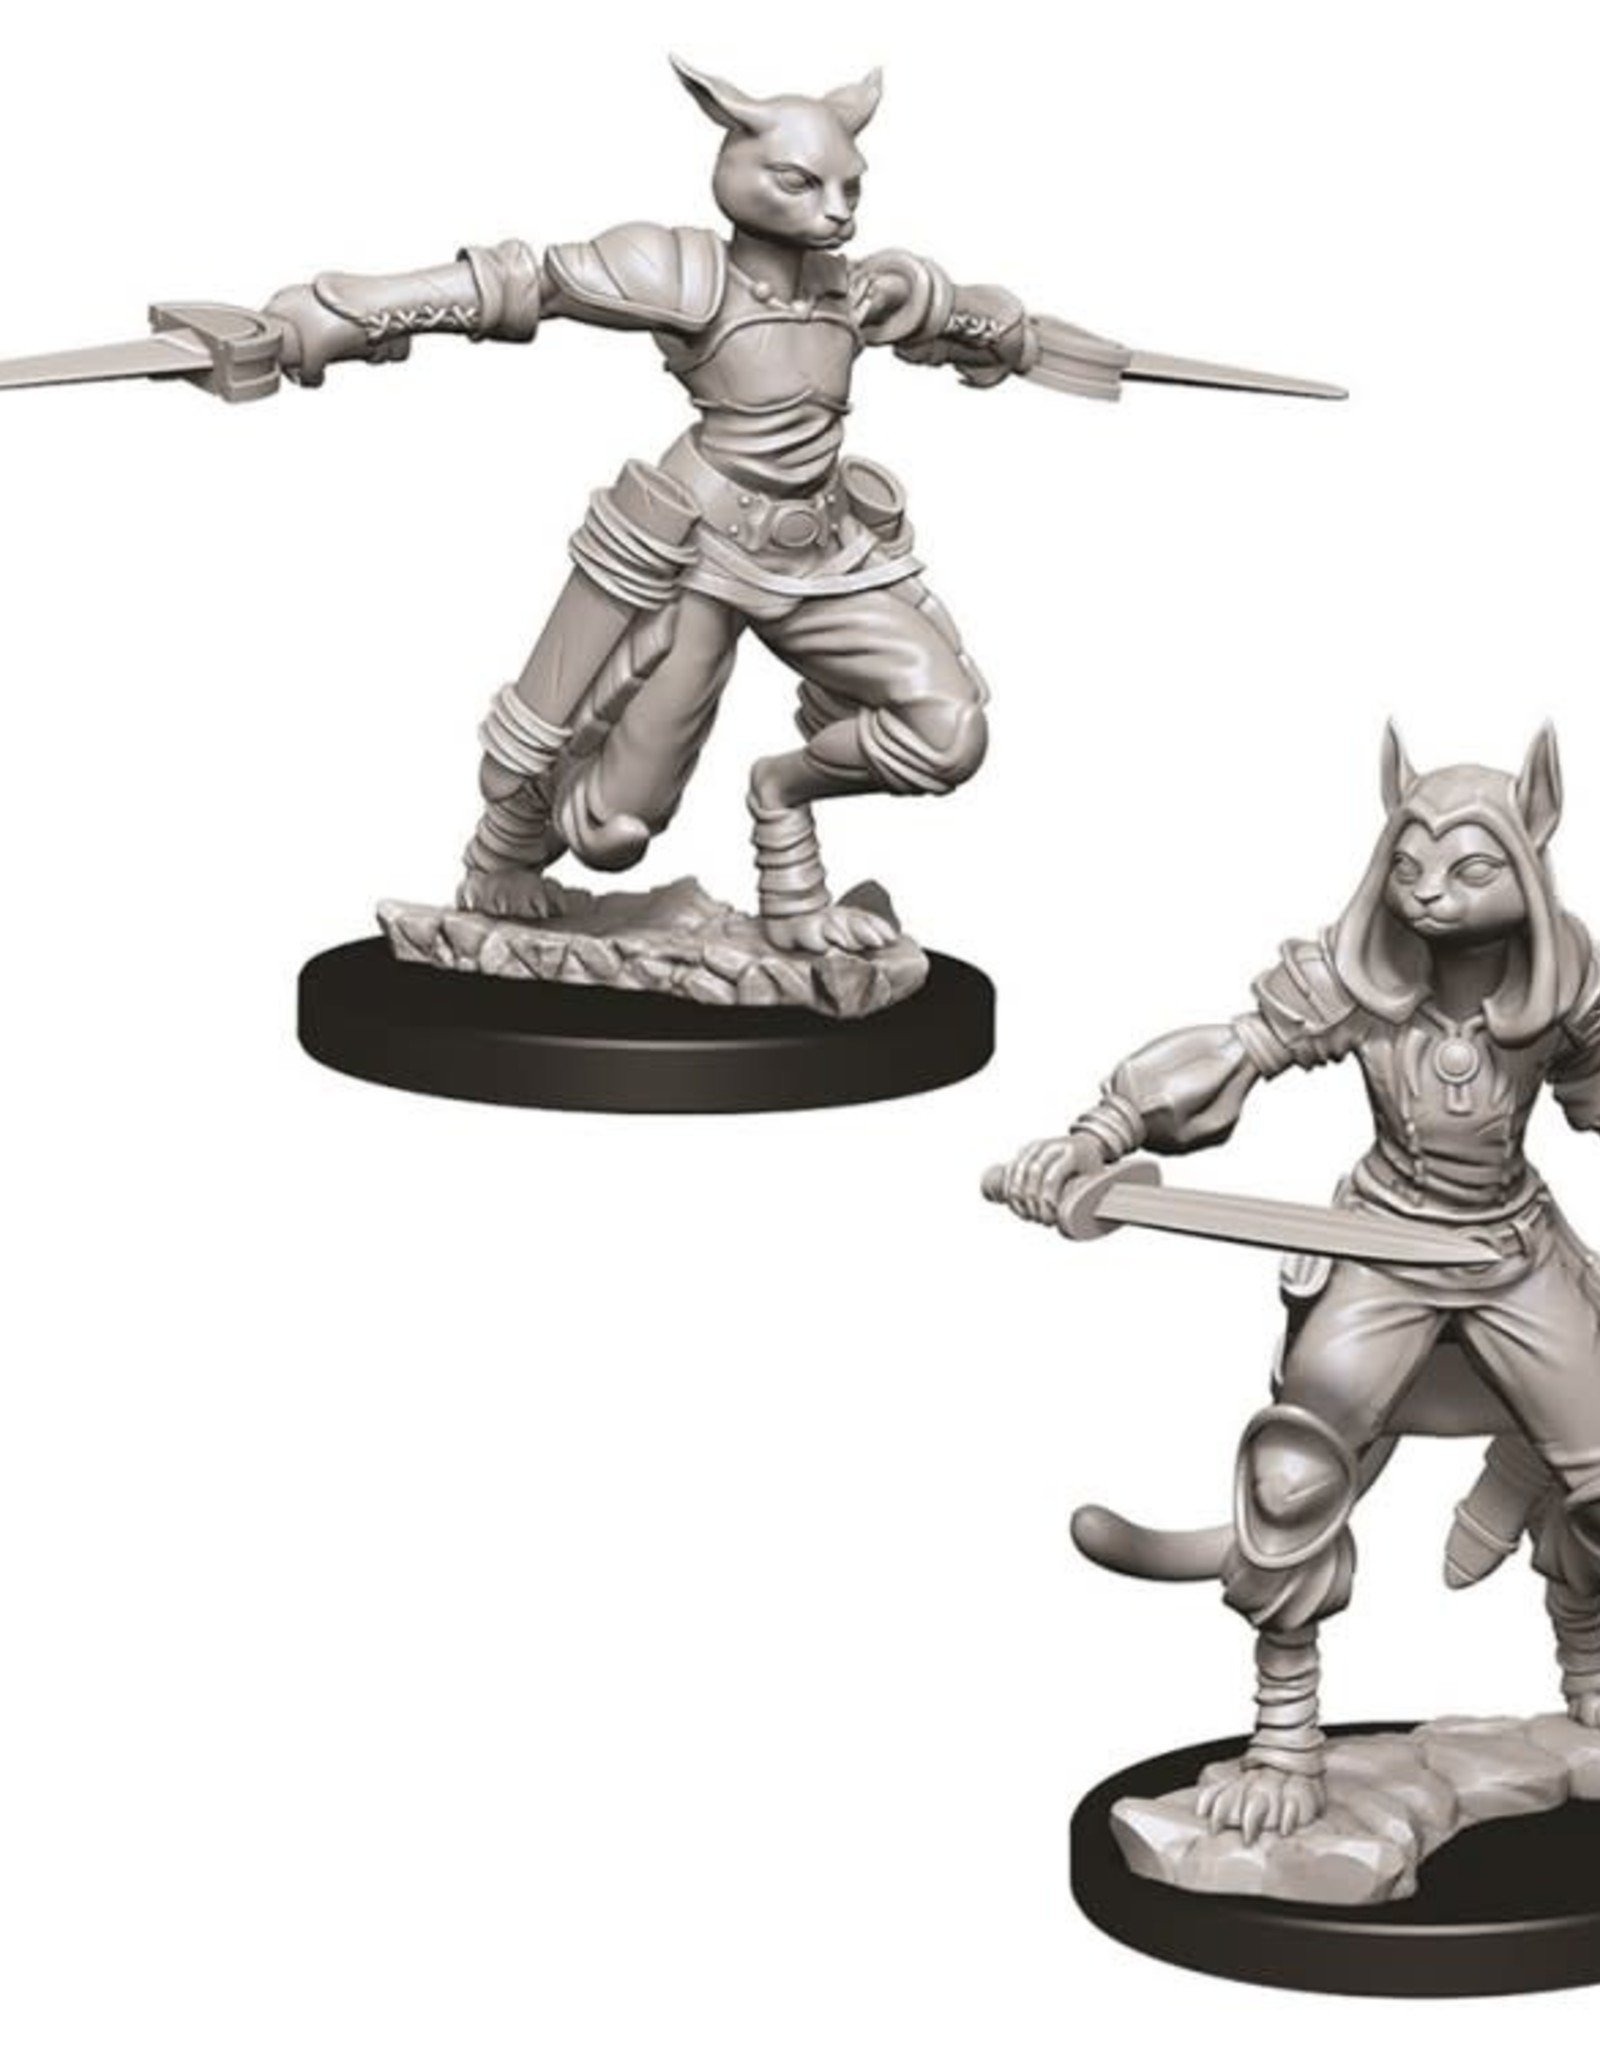 WizKids D&D Nolzur Tabaxi Rogue (She/Her/They/Them)